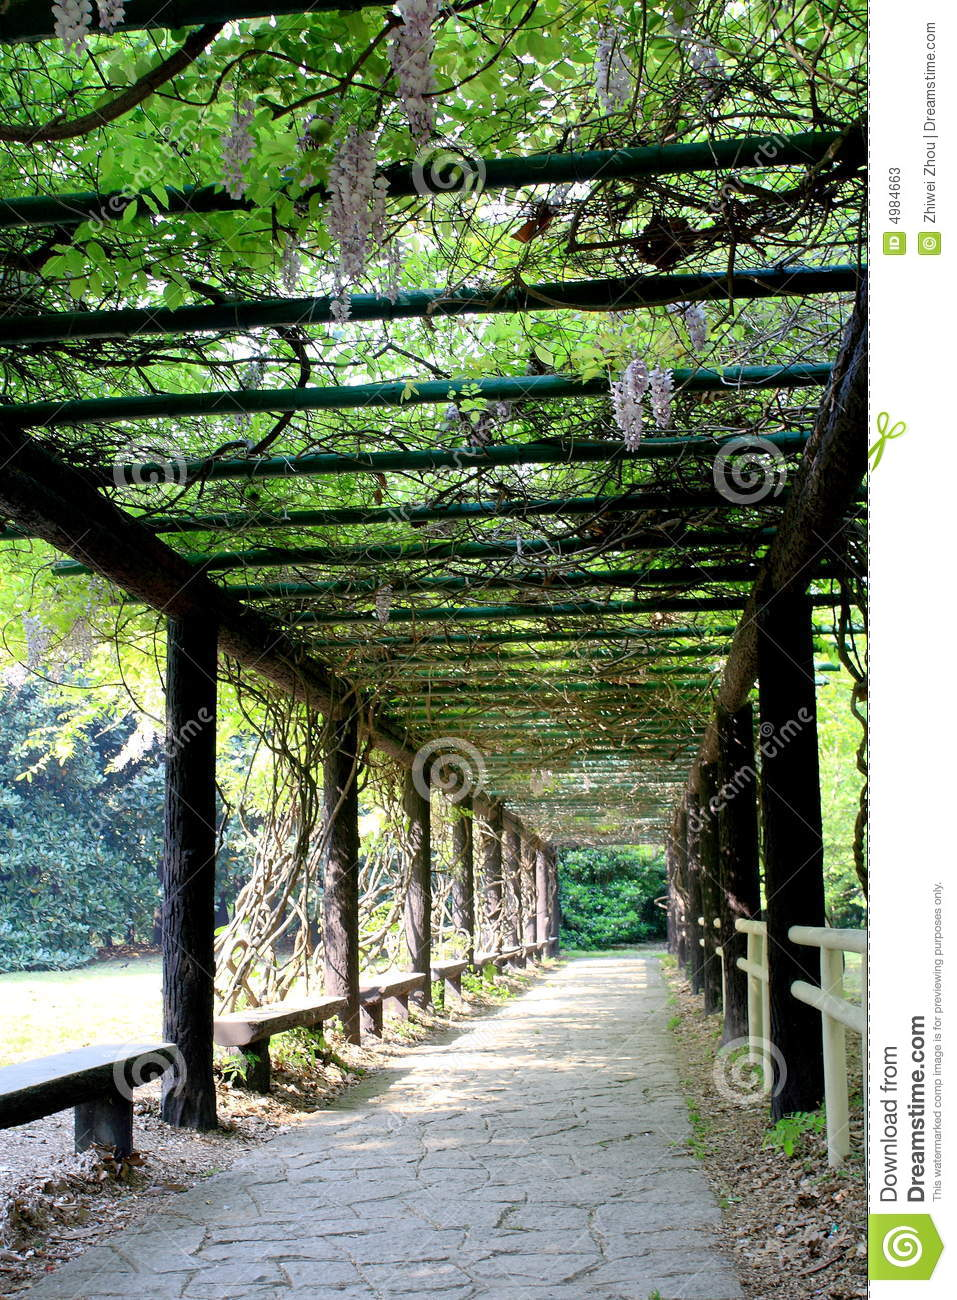 Garden covered by a wistaria plant stock image image for Jardin couvert